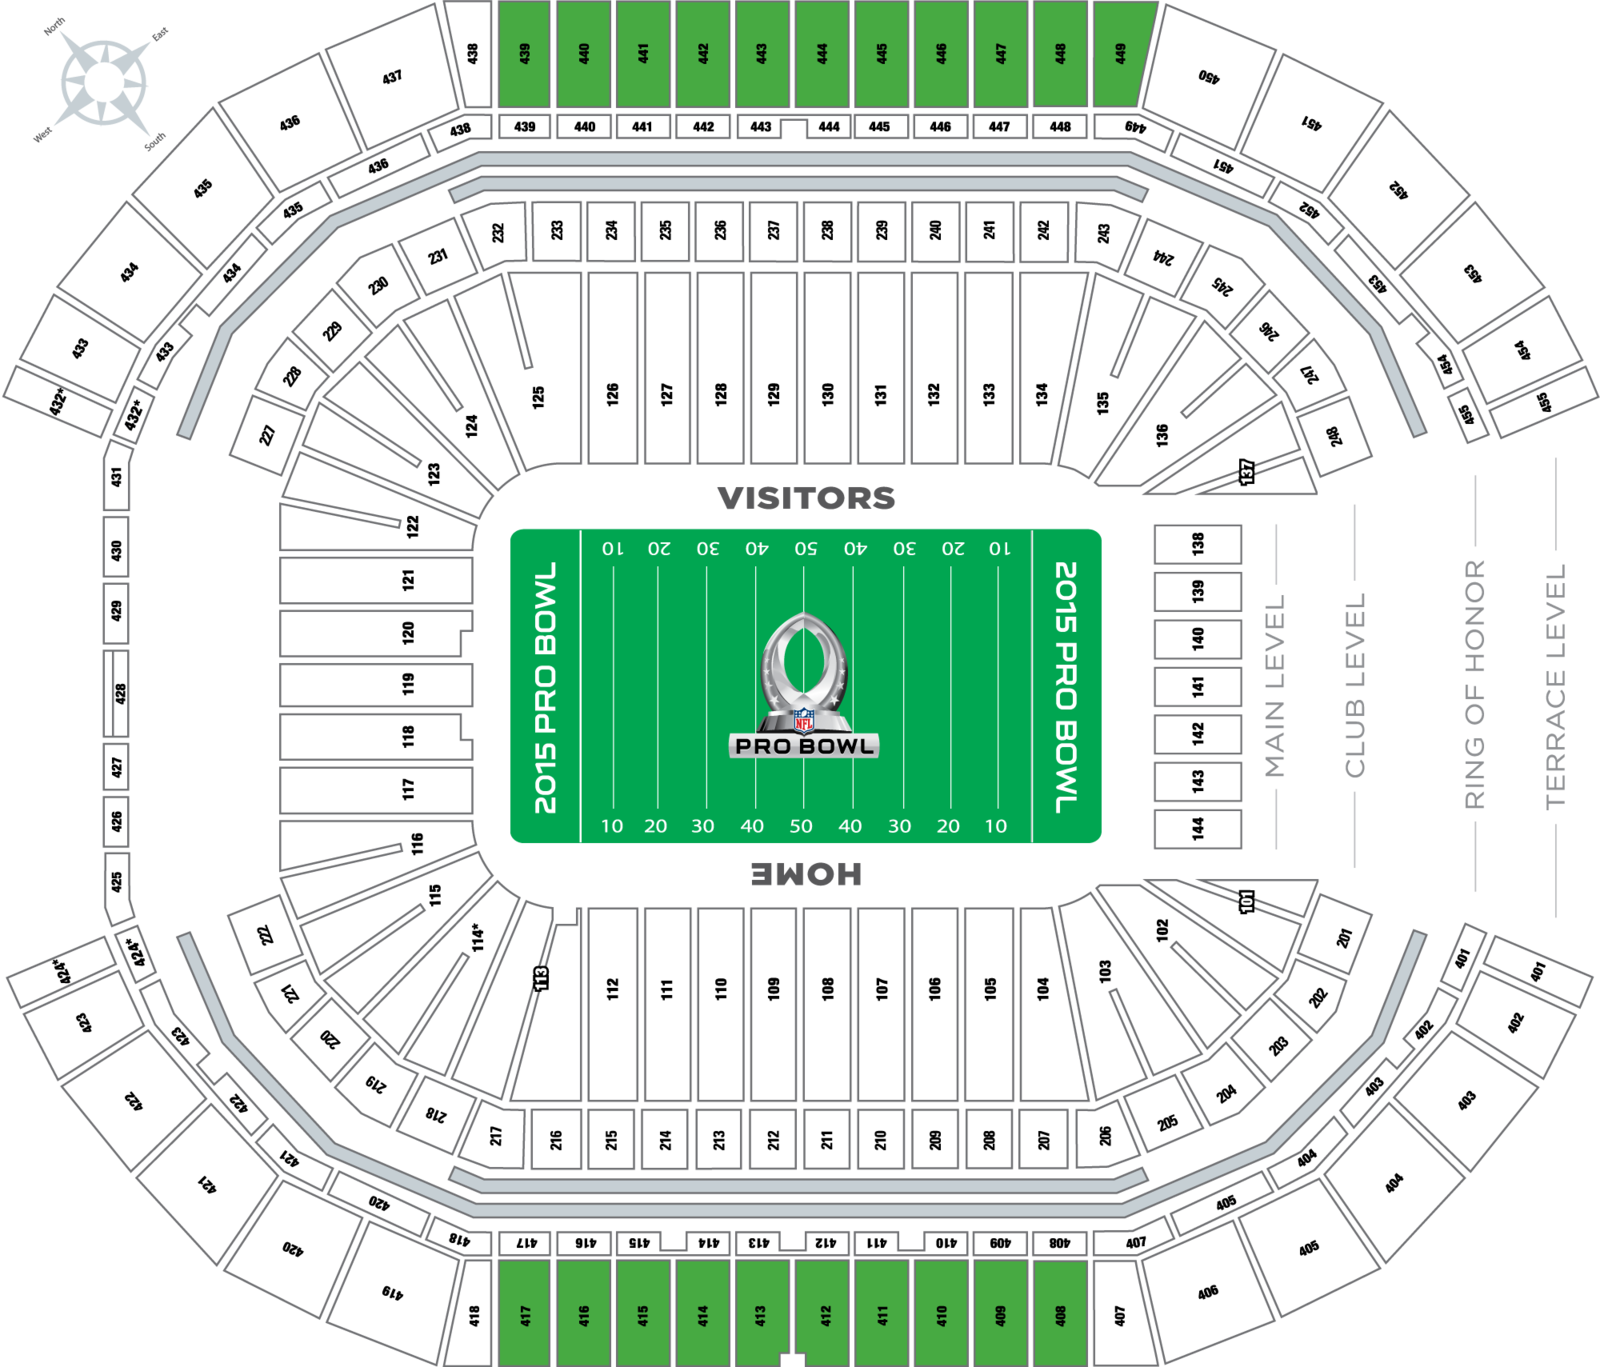 2015-pro-bowl-upper-level-seating-gray